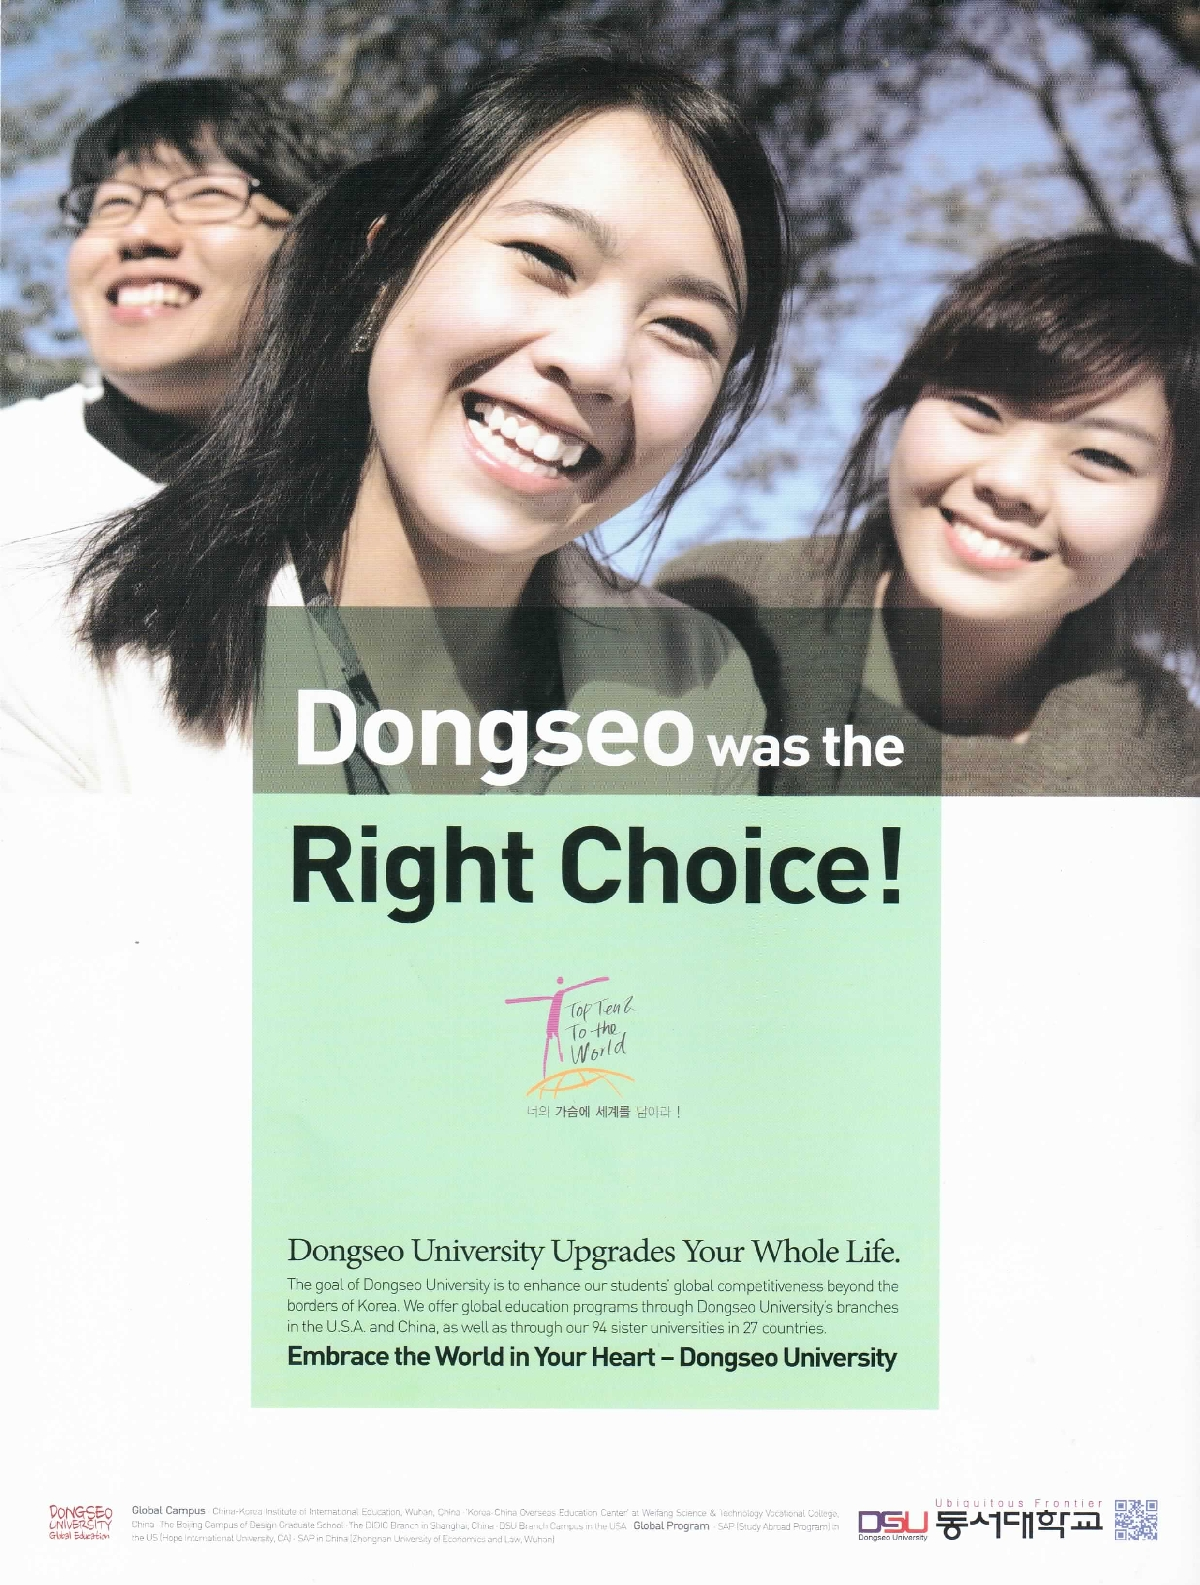 dongseo university advertisement Gay teen boy sex,